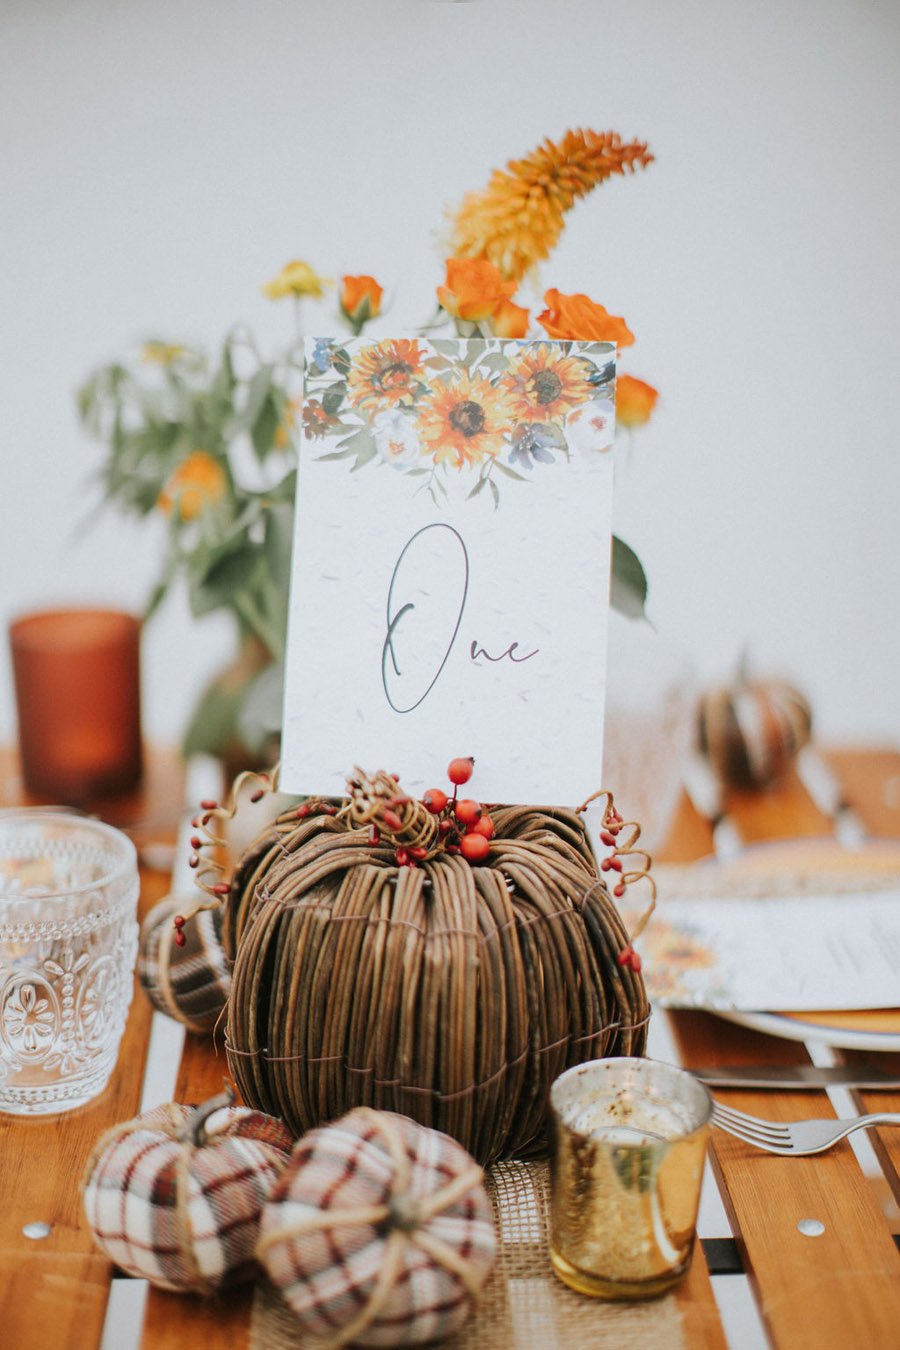 Cosy, snug and rustic wedding inspiration at The Scenic Supper venue (4)